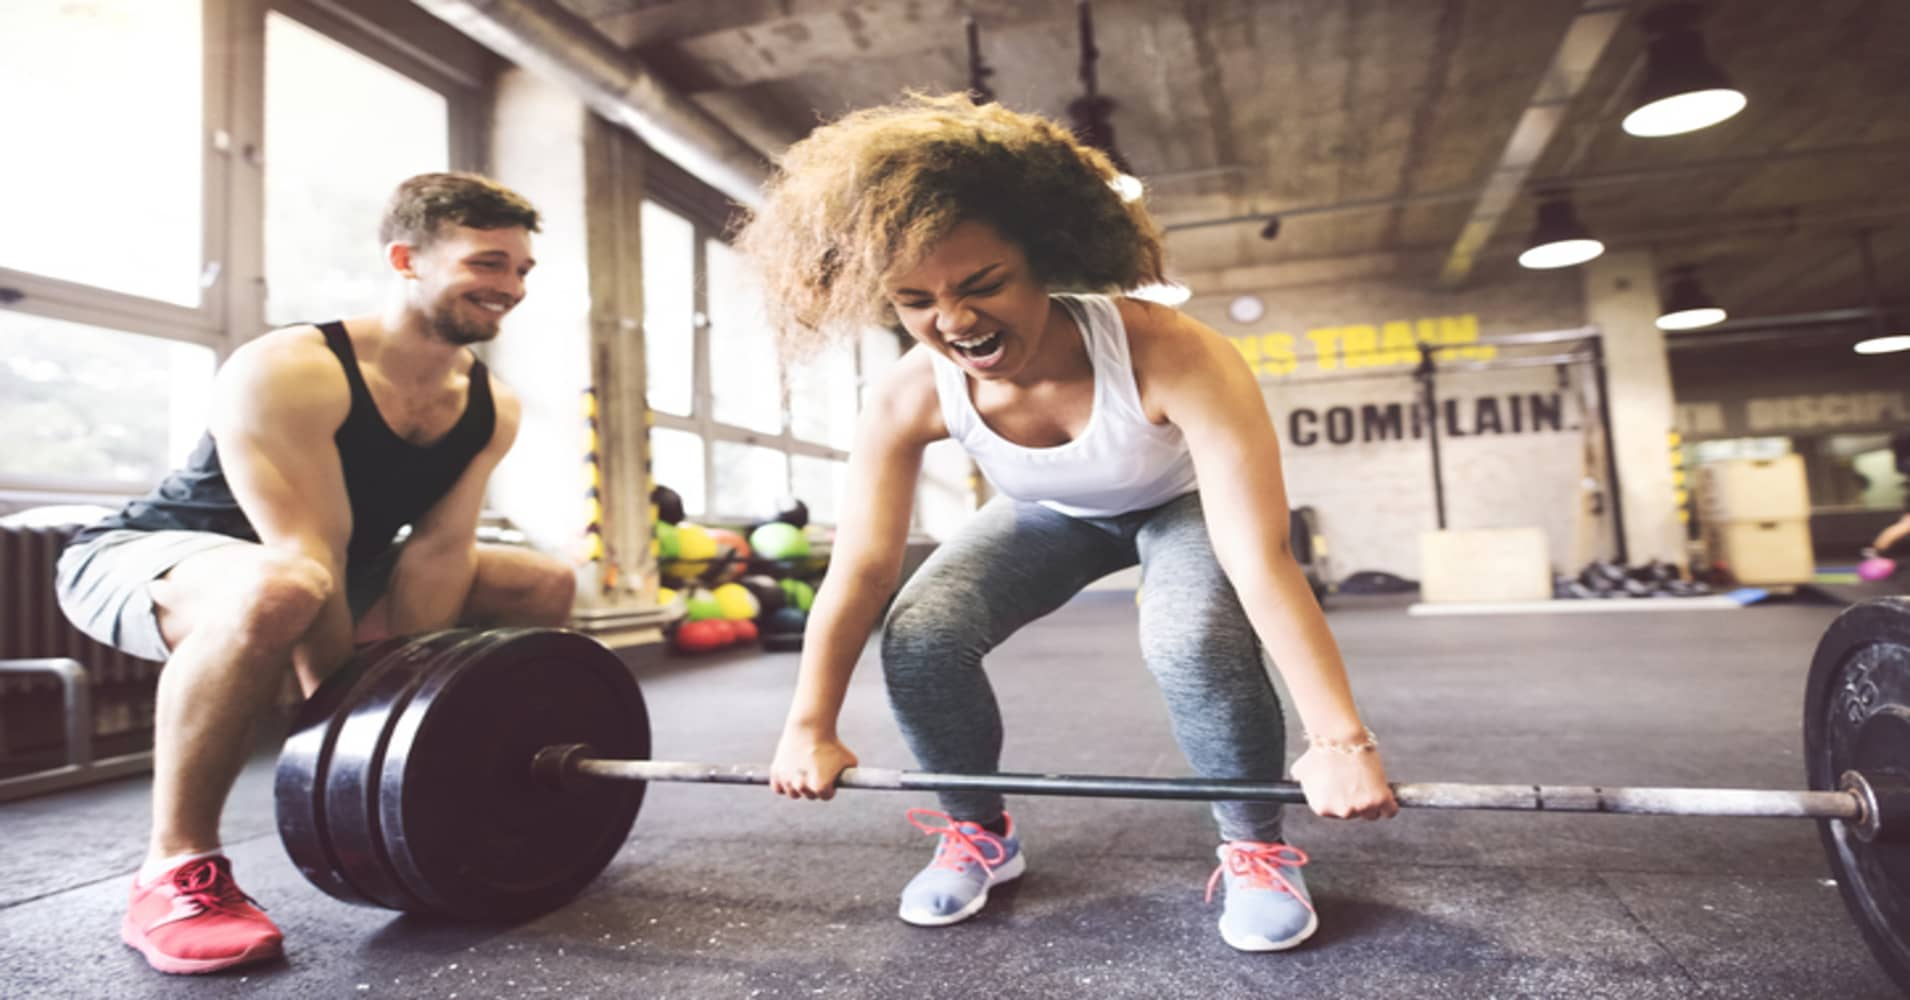 New year, new you: Fitness trends for 2019